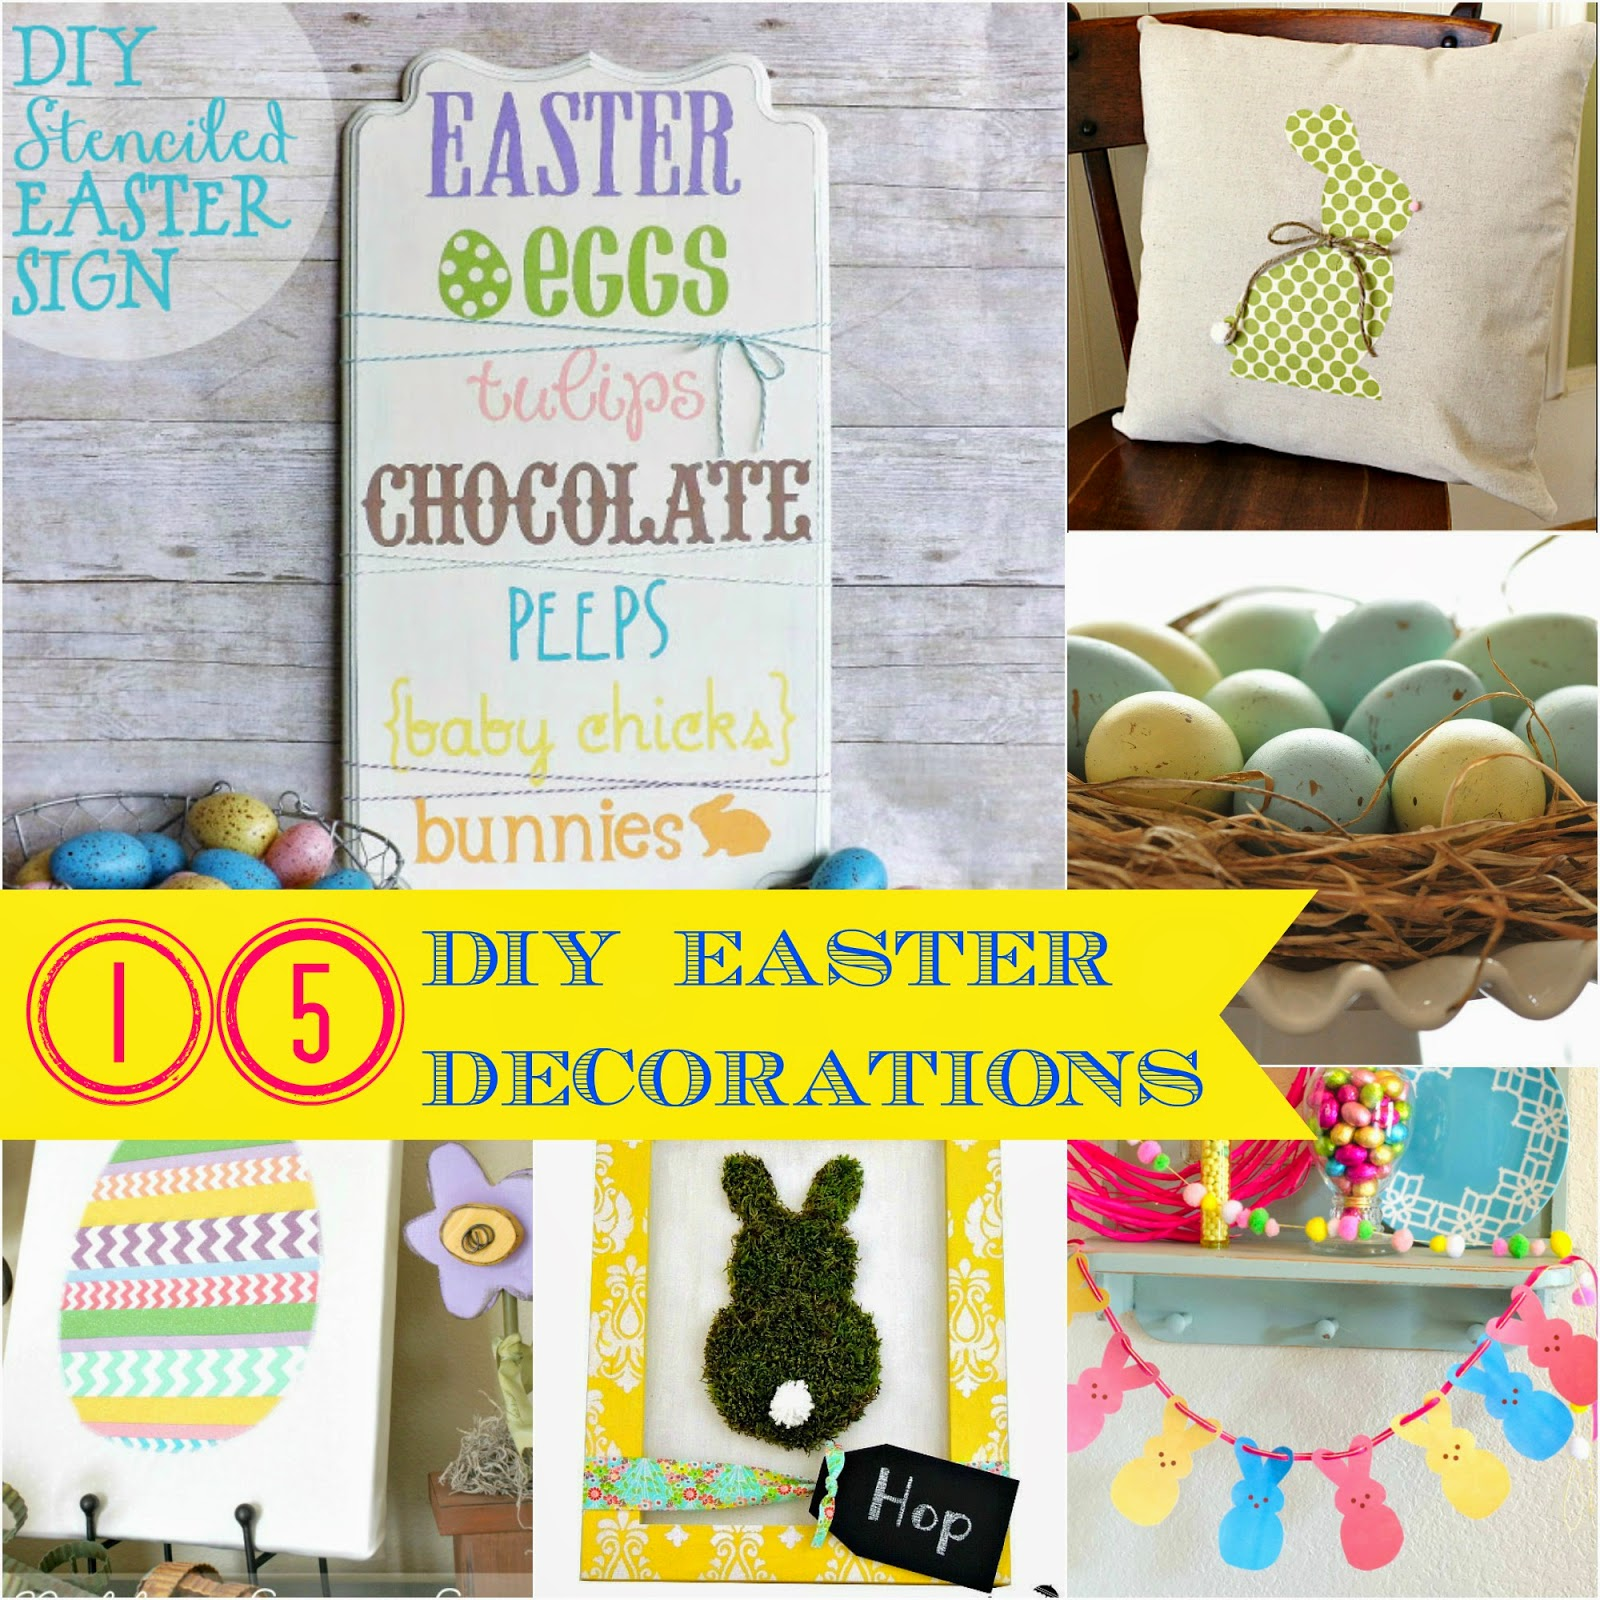 I Dig Pinterest Easter Link Party Features 15 Diy Easter